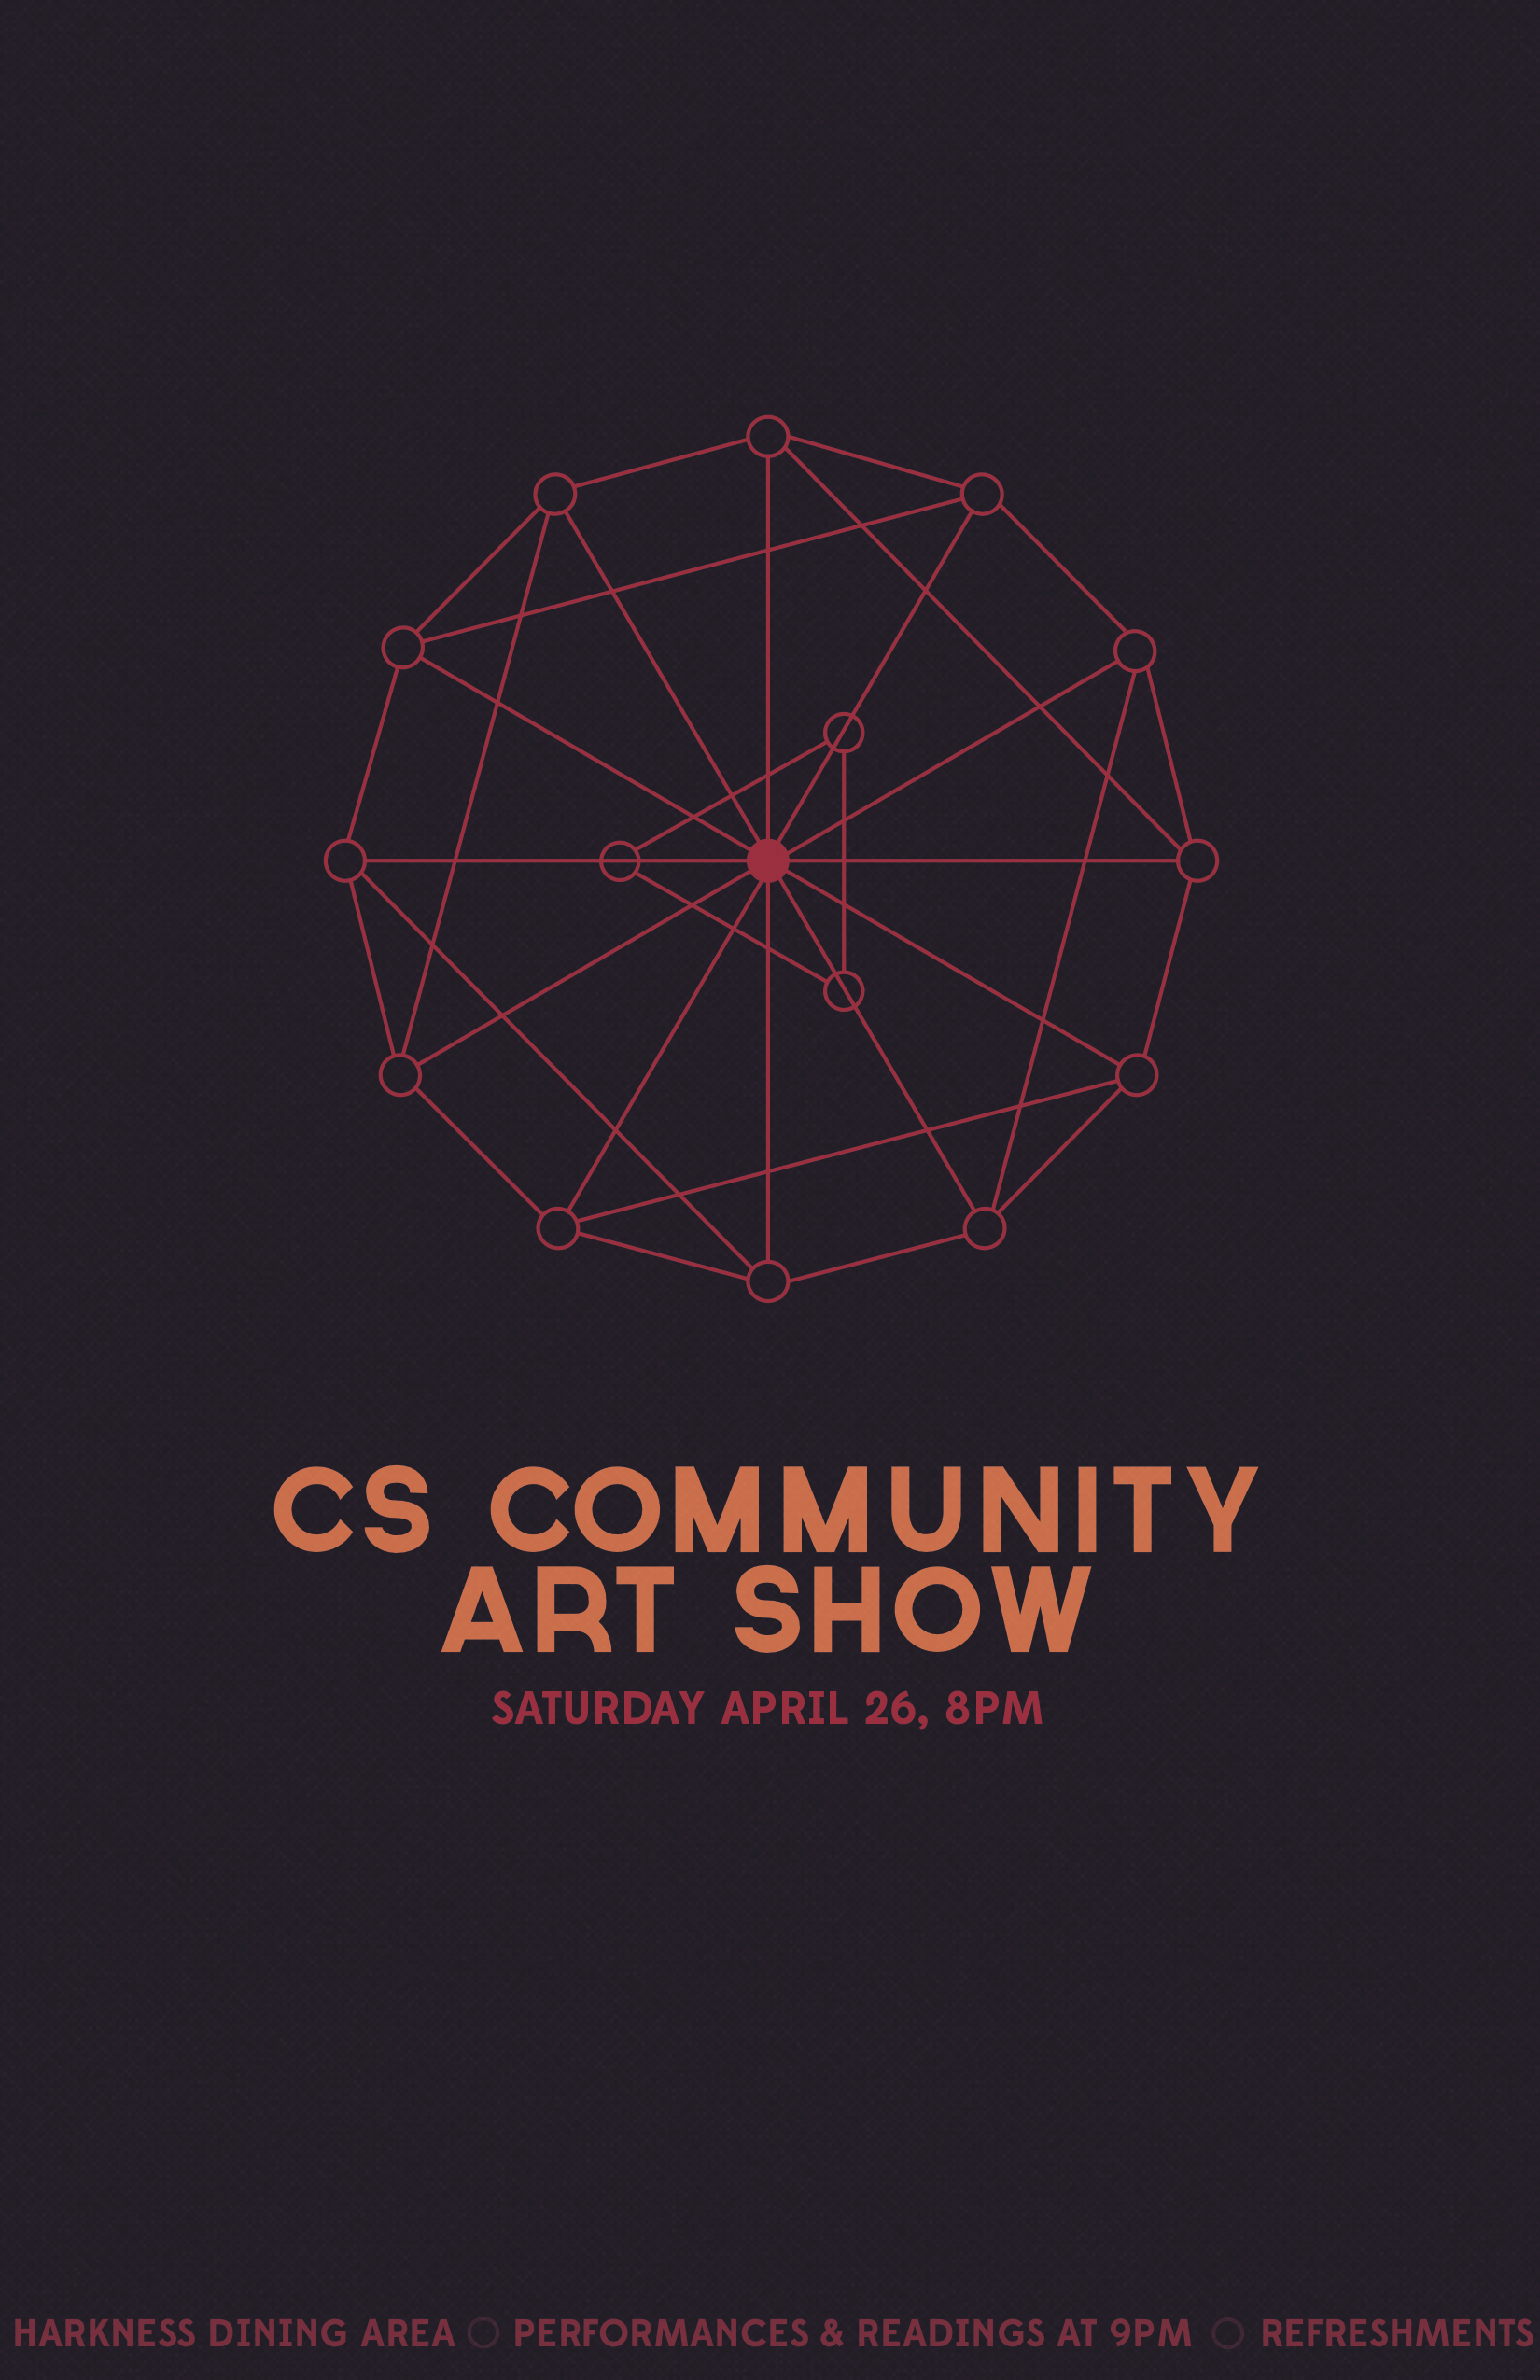 CS Community Art Show